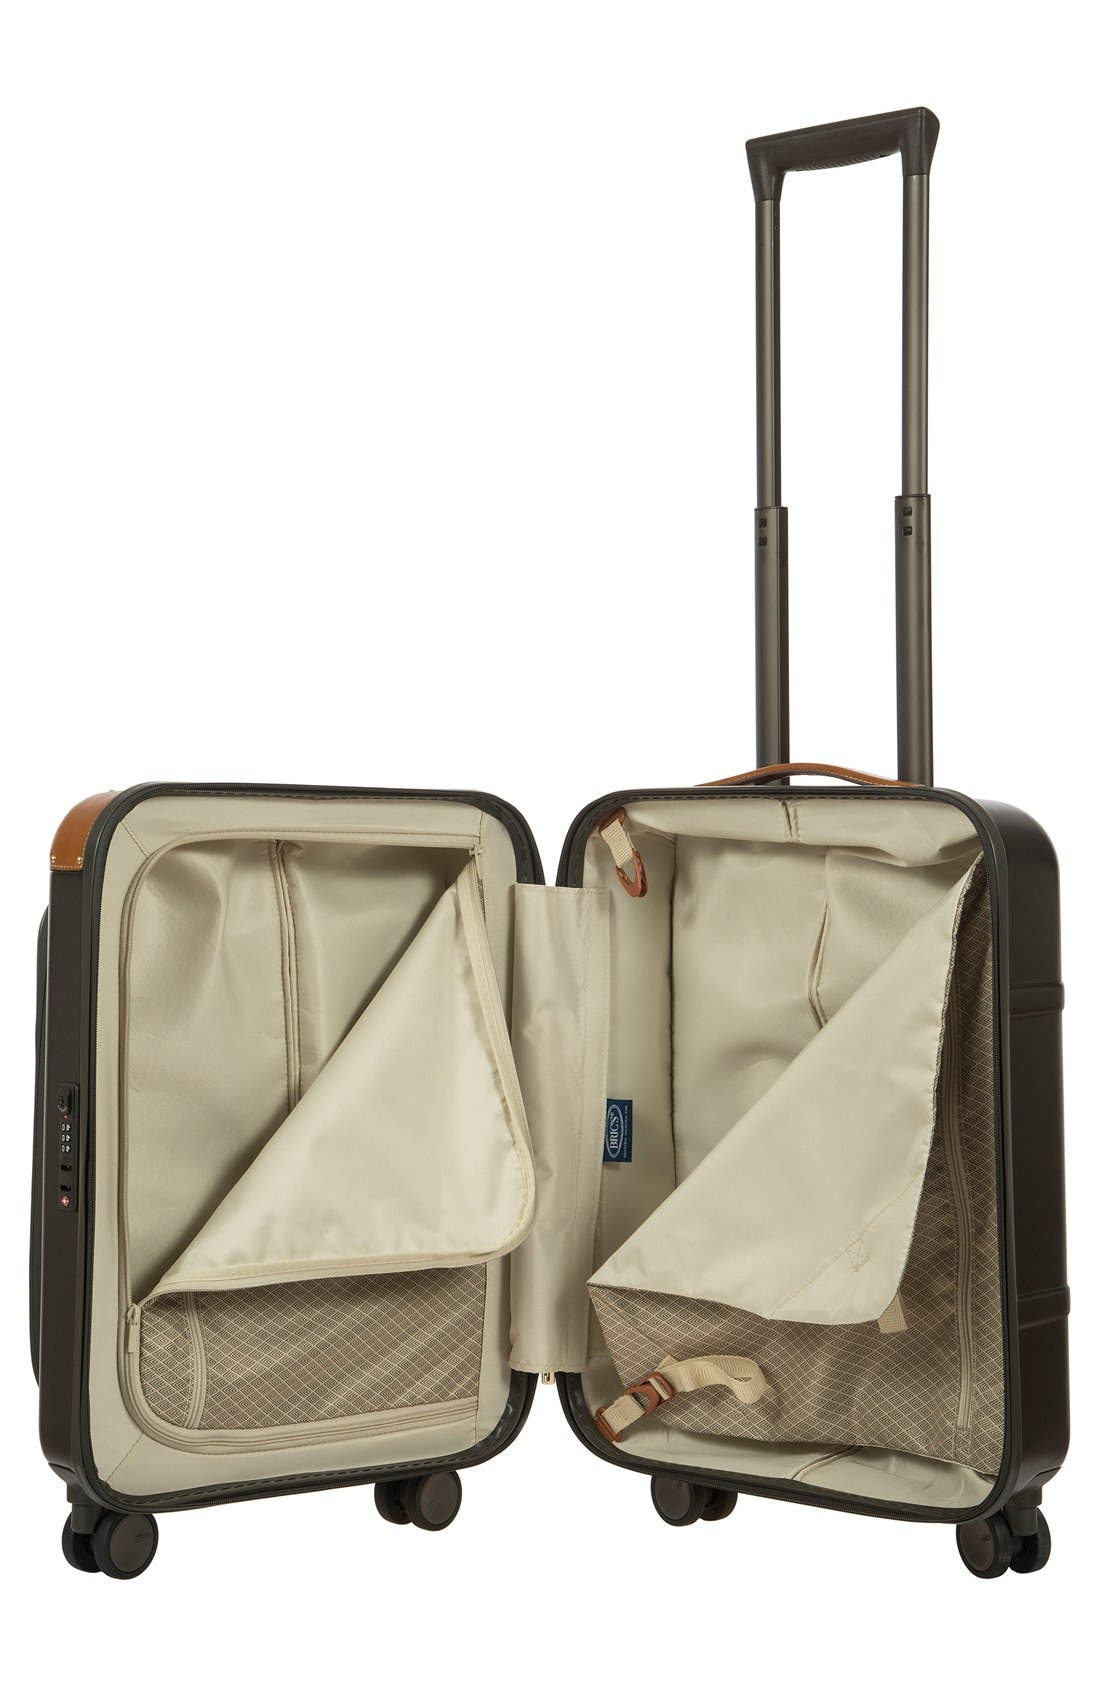 Alternate Image 2  - Bric's Bellagio 2.0 21-Inch Rolling Carry-On